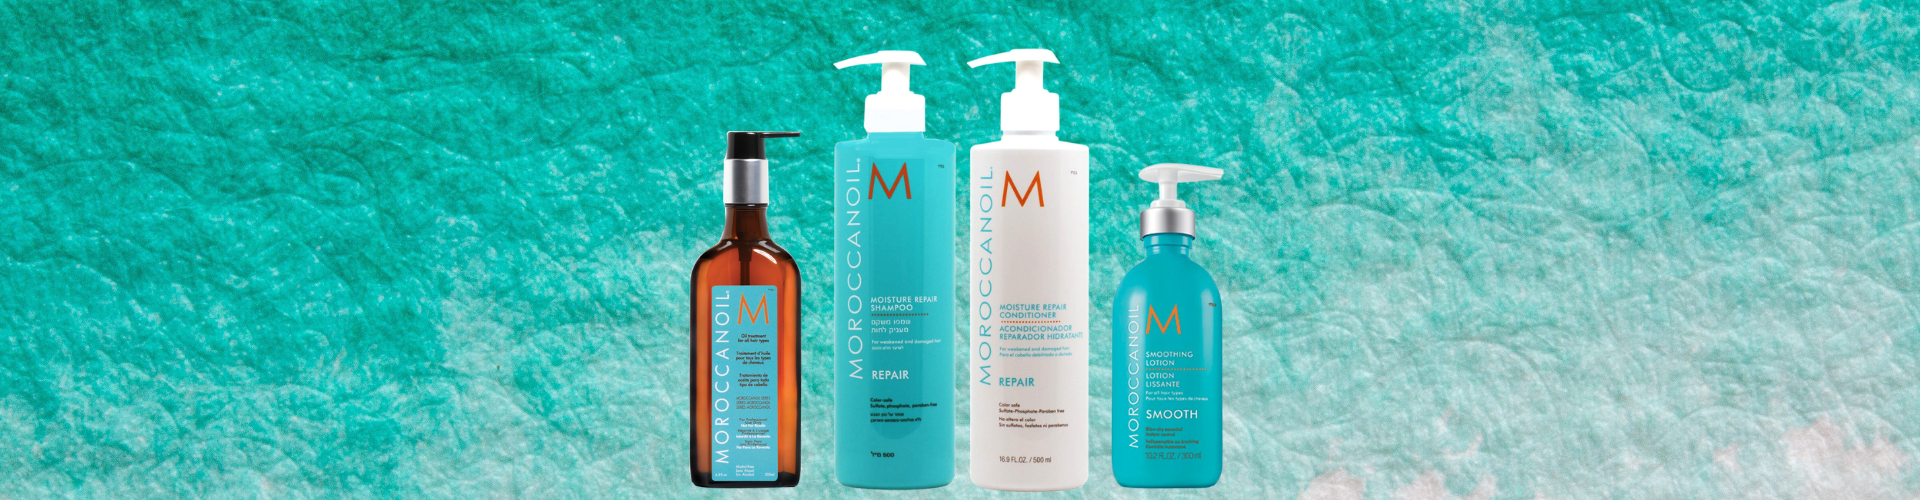 Moroccanoil hair care routine review